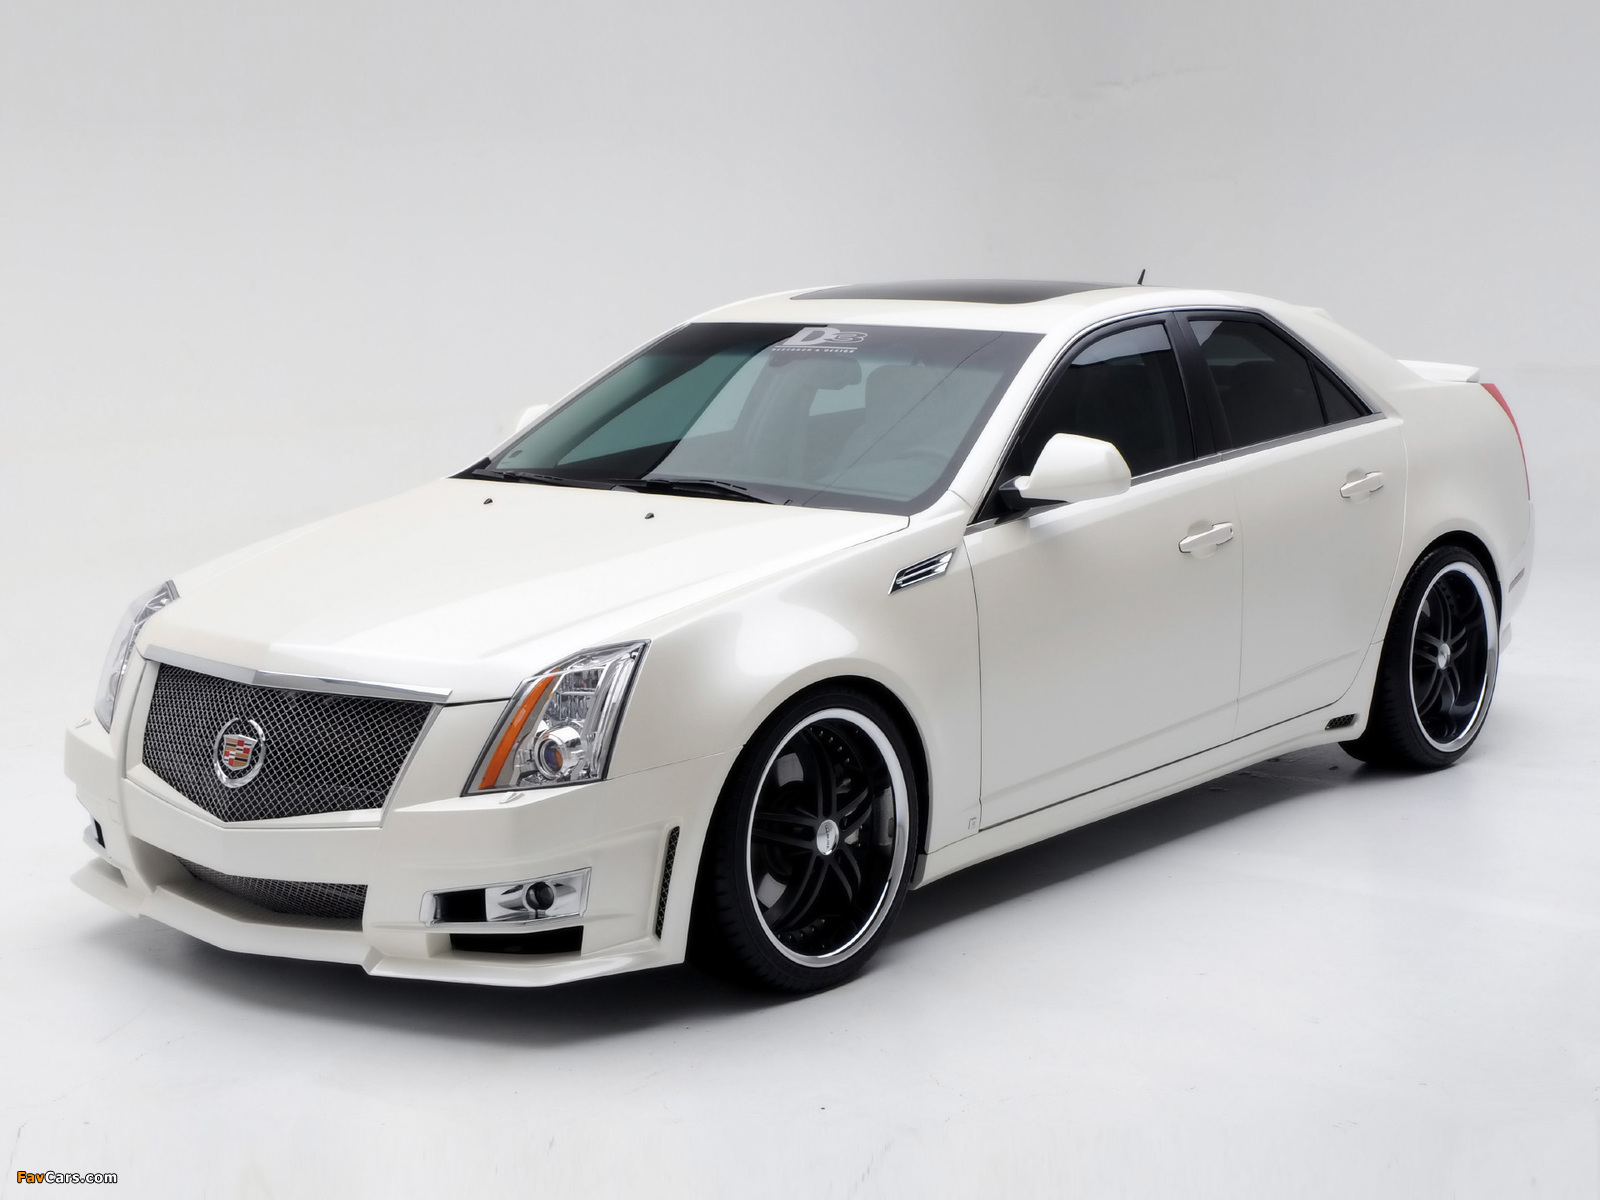 Cadillac CTS by D3 2007 wallpapers (1600 x 1200)